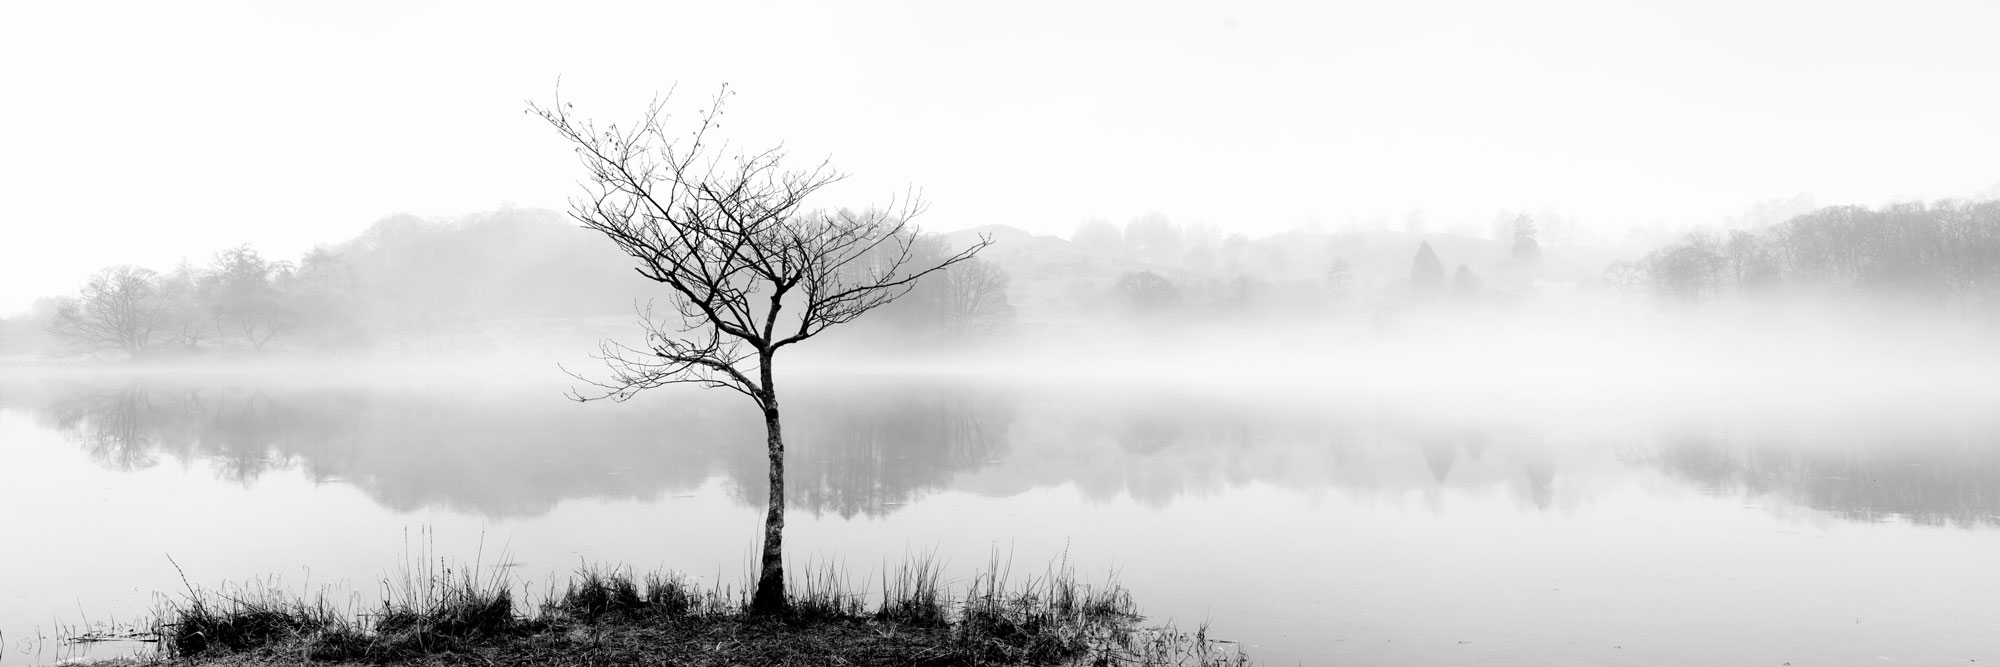 Loughrigg Tarn in the mist